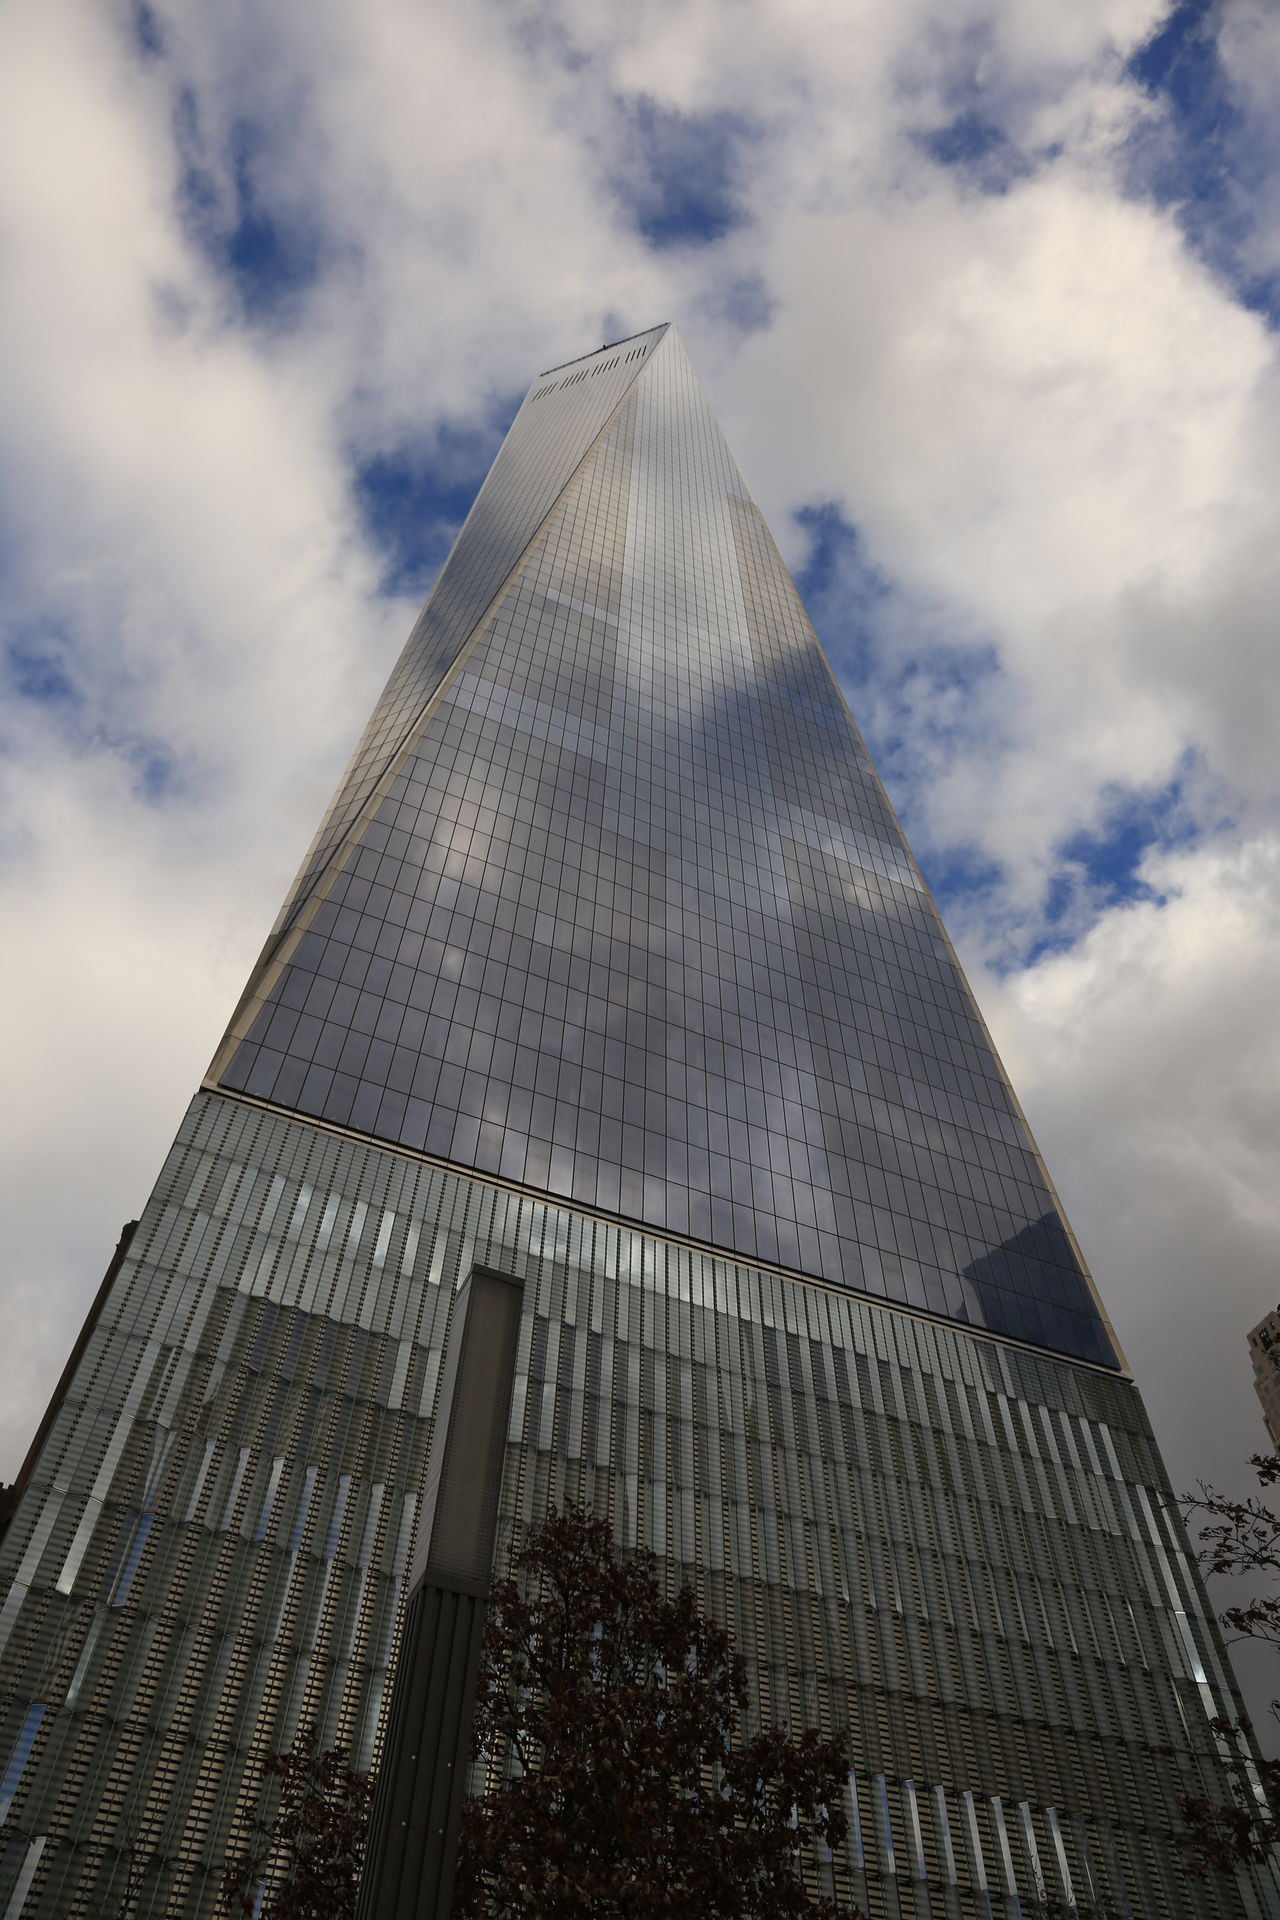 Architecture Building Exterior Built Structure City Cloud - Sky Day Glass Building Glass Building New York City Low Angle View Mirror Reflection Modern New York New York City No People One World Trade One World Trade Center Outdoors Reflection Sky Skyscraper